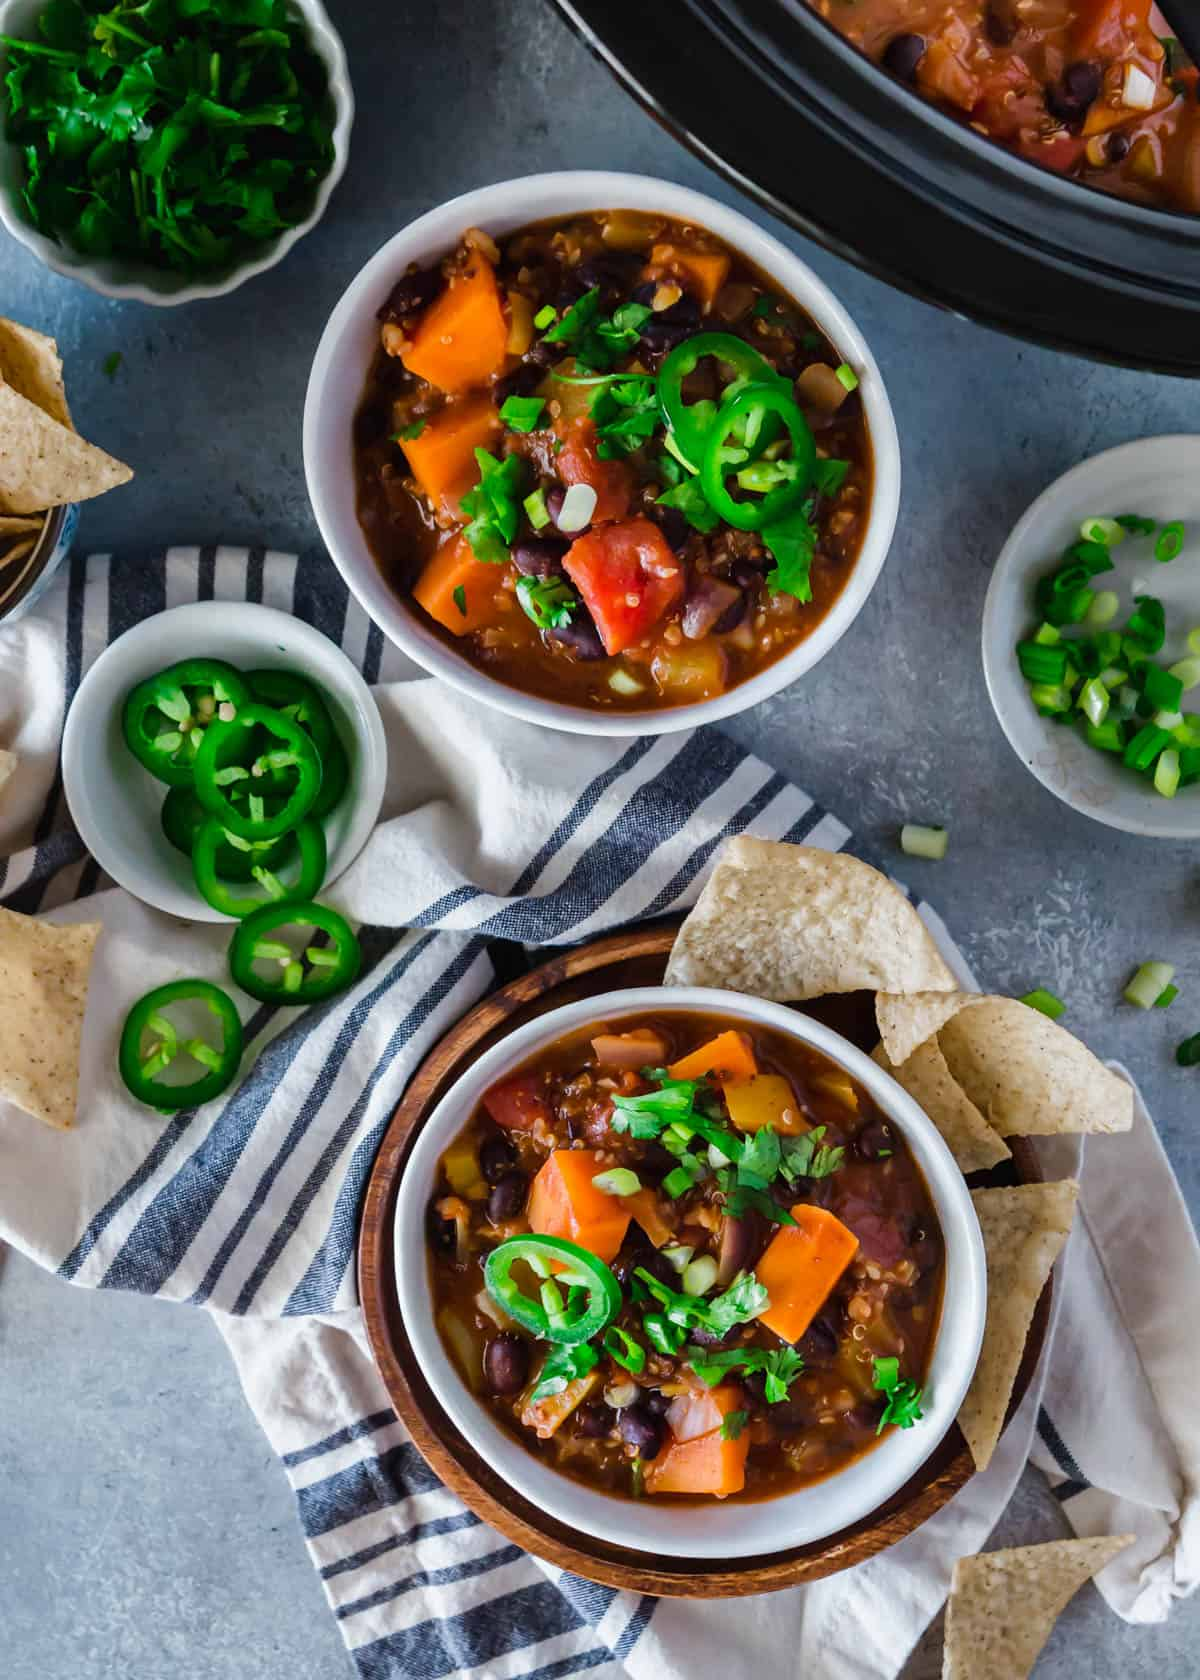 two bowls of sweet potato and quinoa chili on a table with chili garnishes on the side